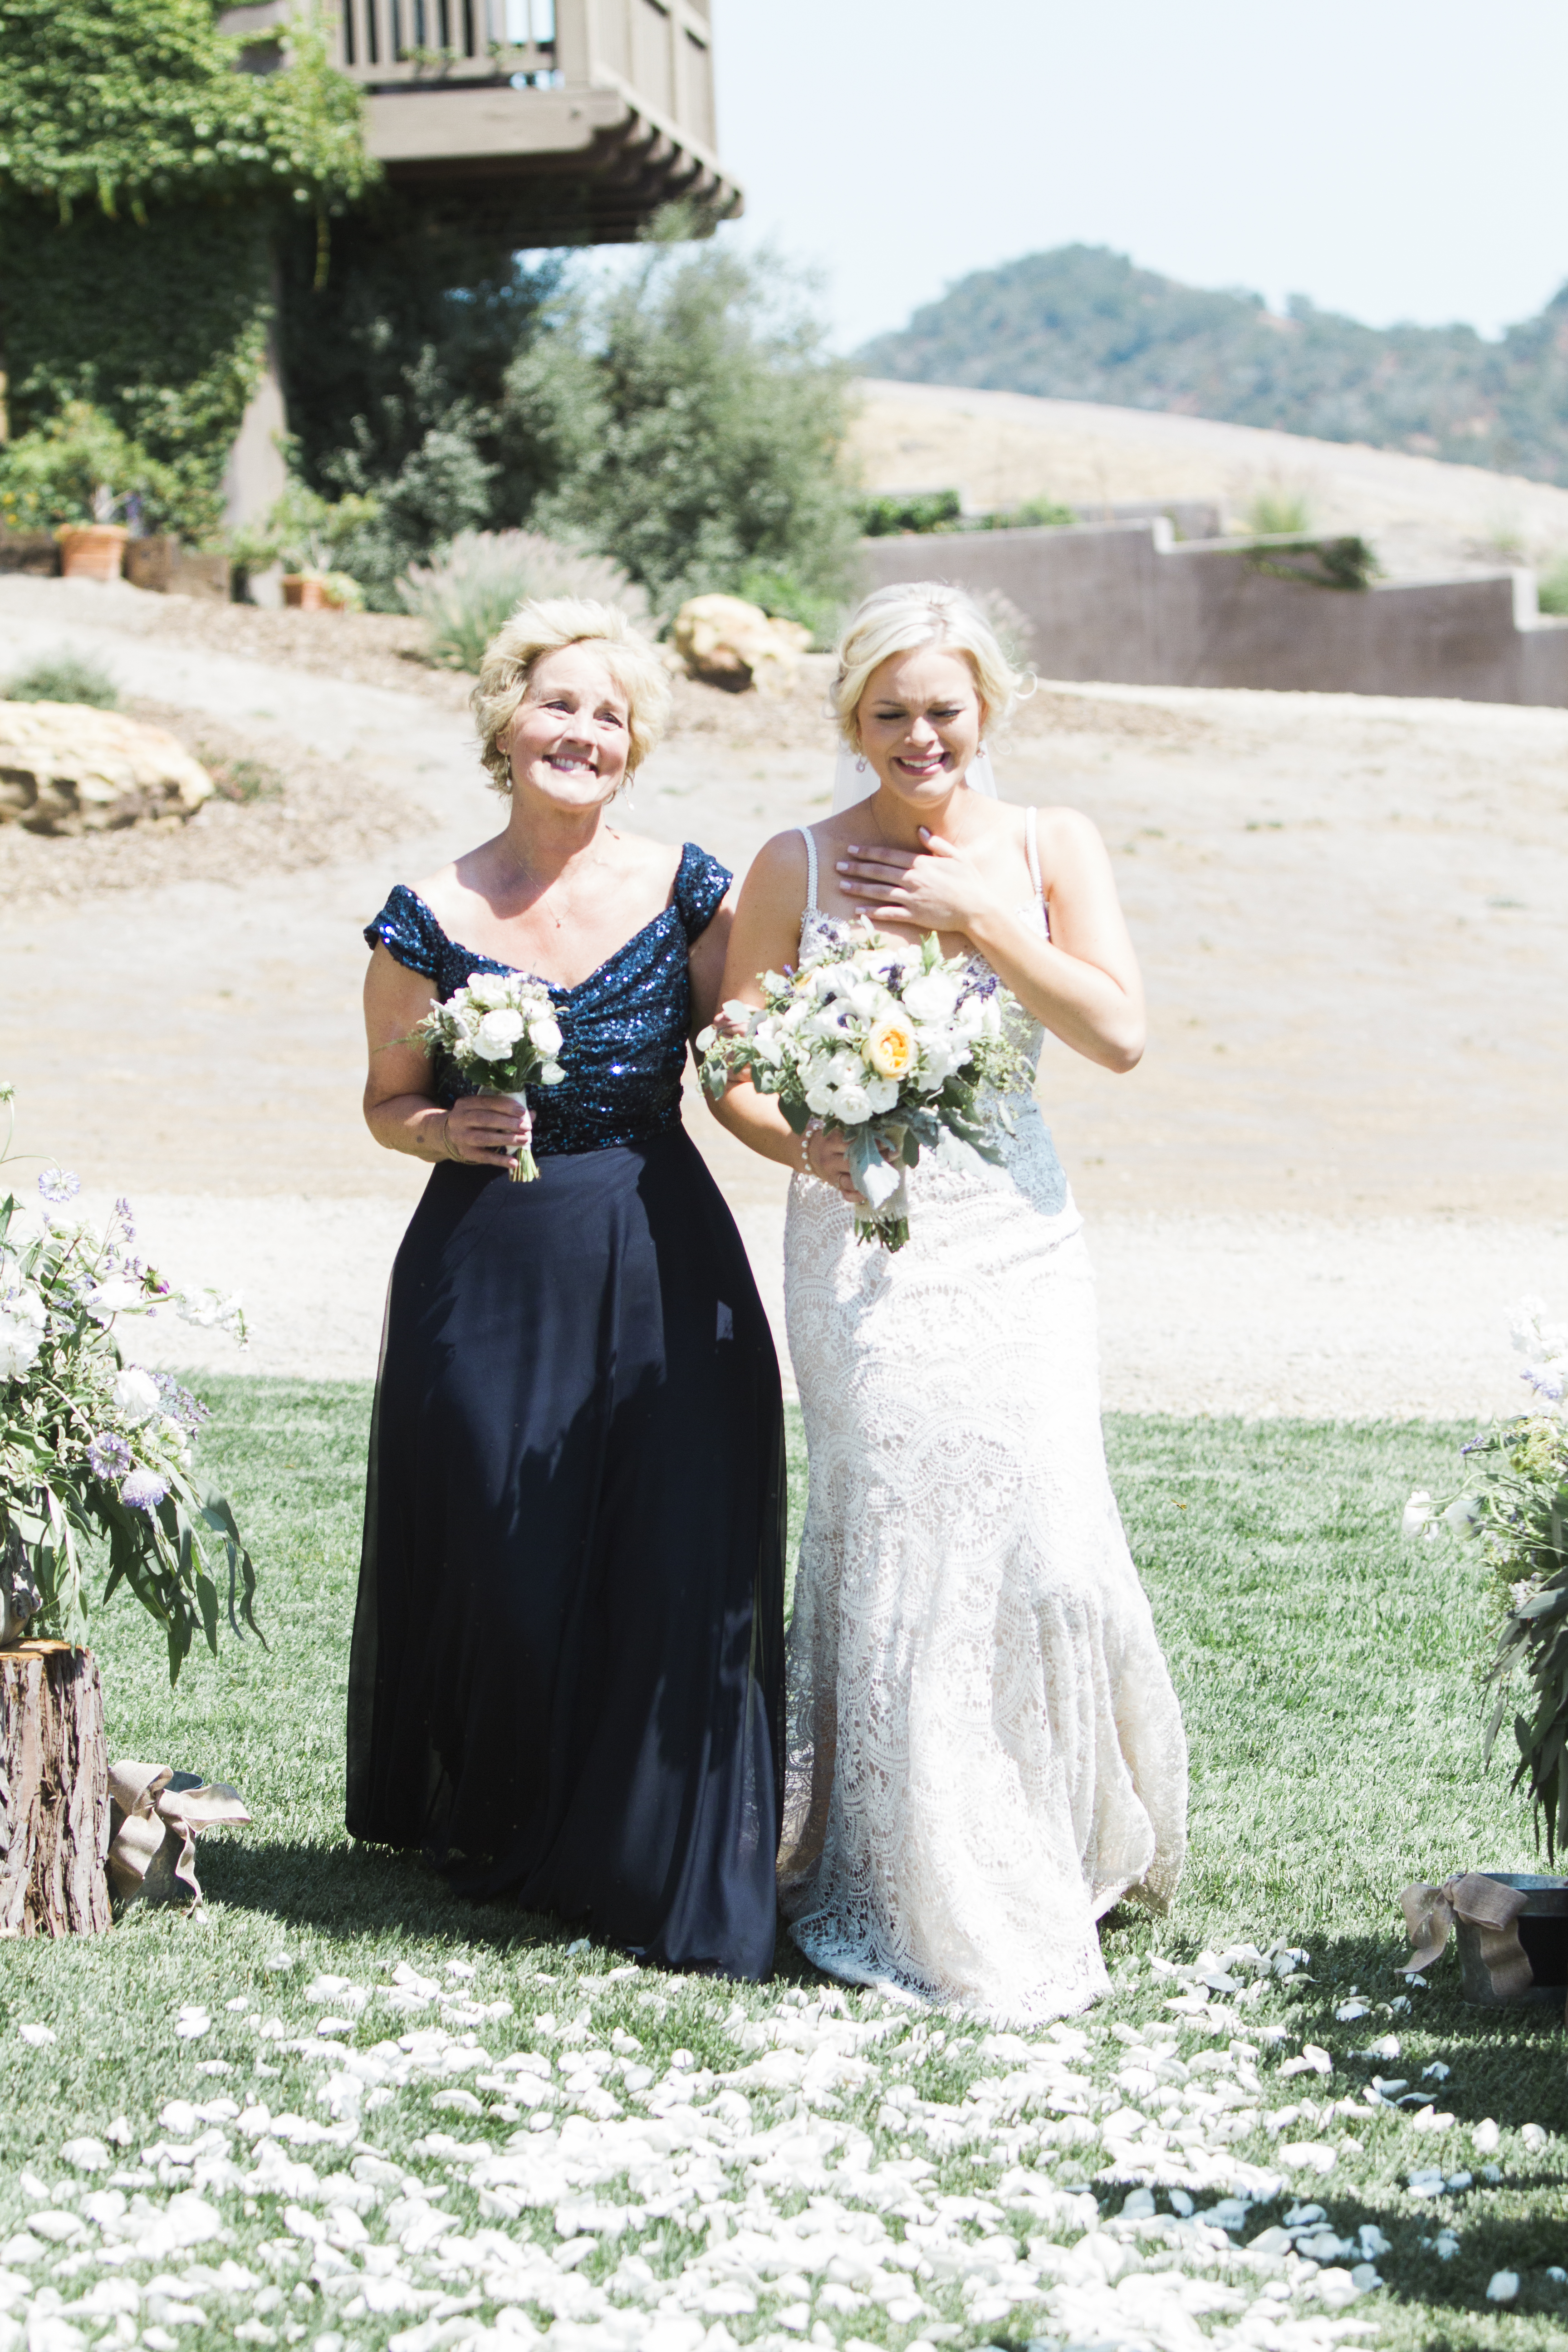 Loomis Ranch-Shannon McMillen Photography-44